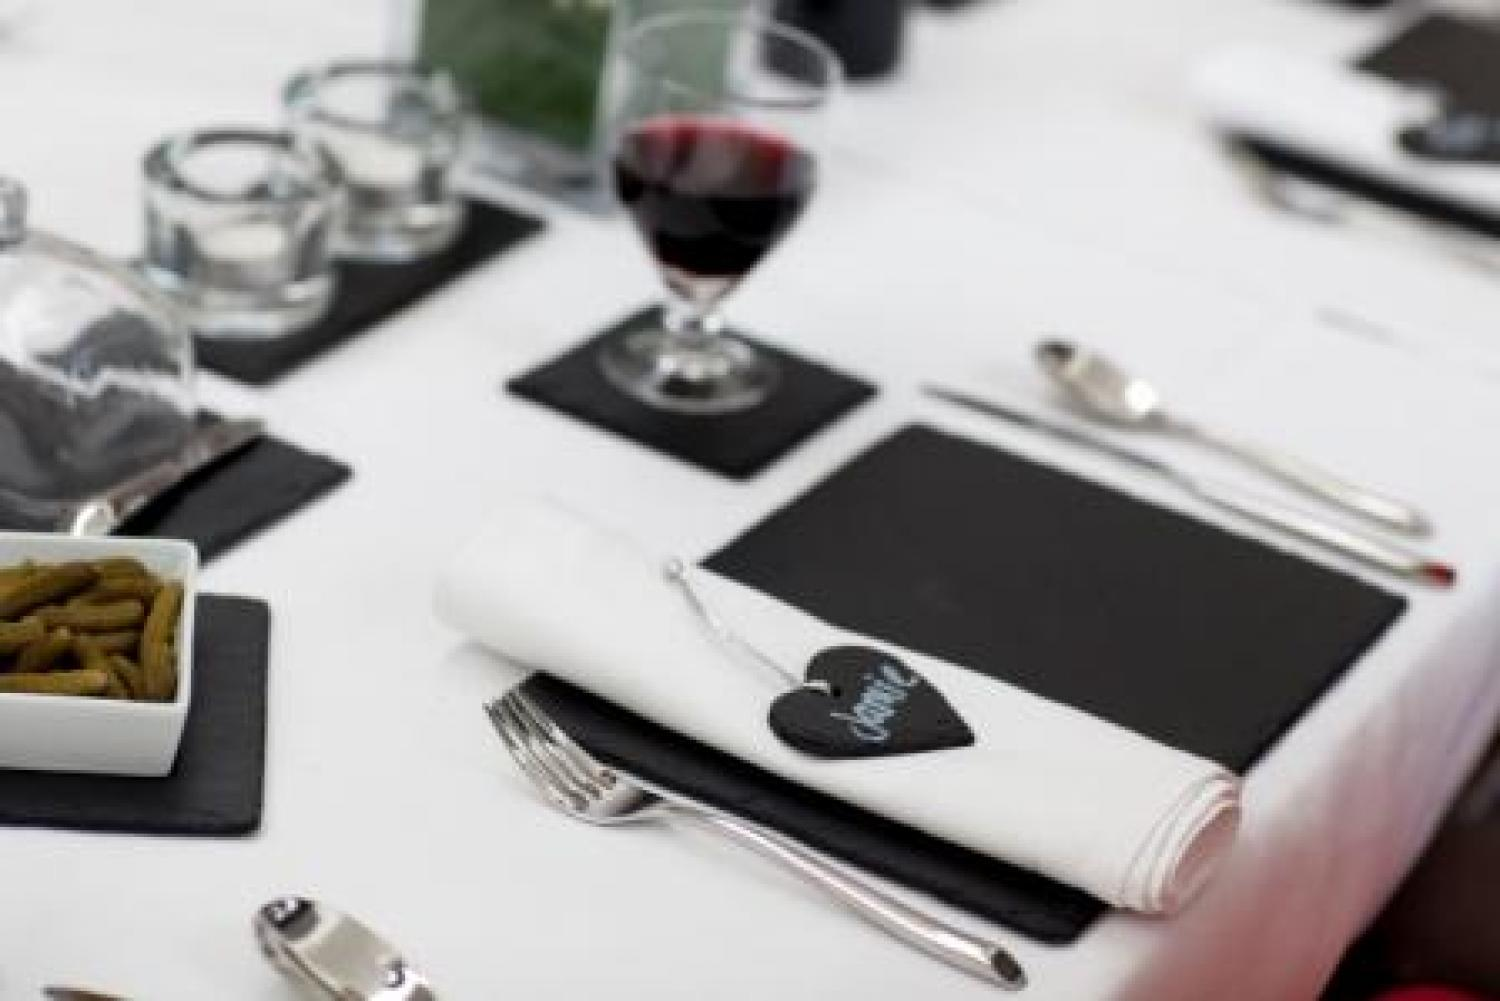 Rectangular slate place mats